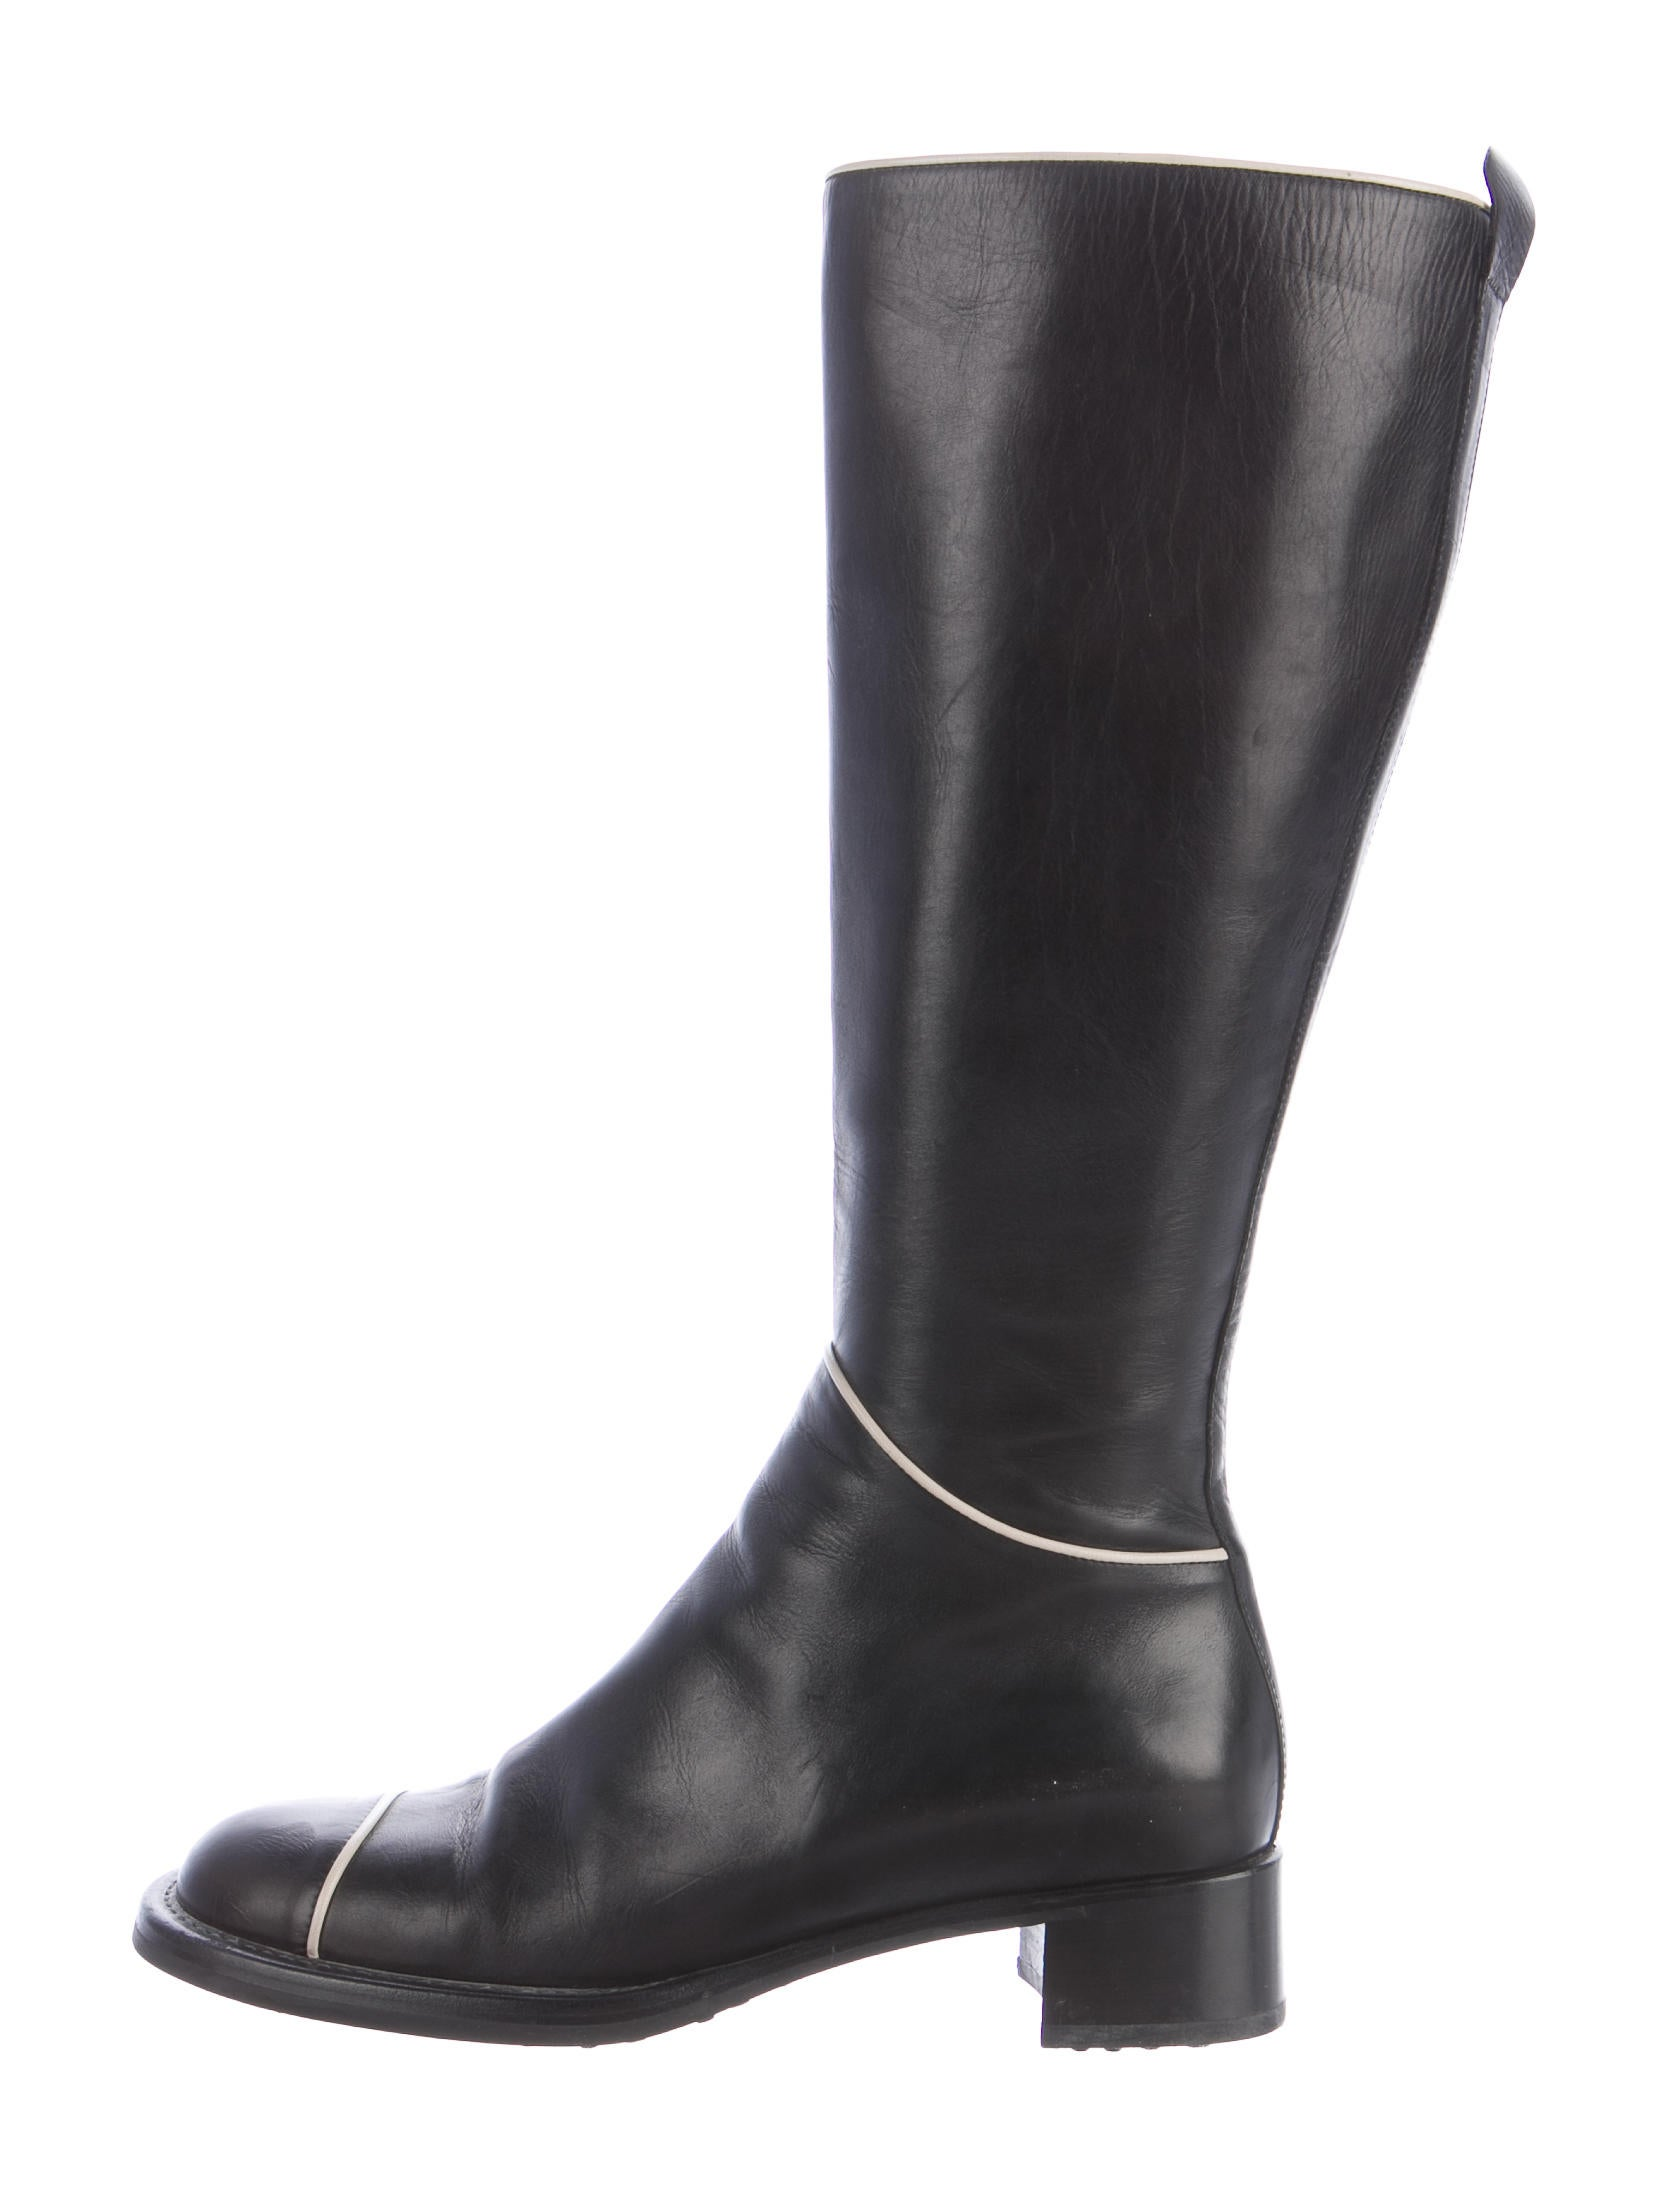 prada leather knee high boots shoes pra157776 the